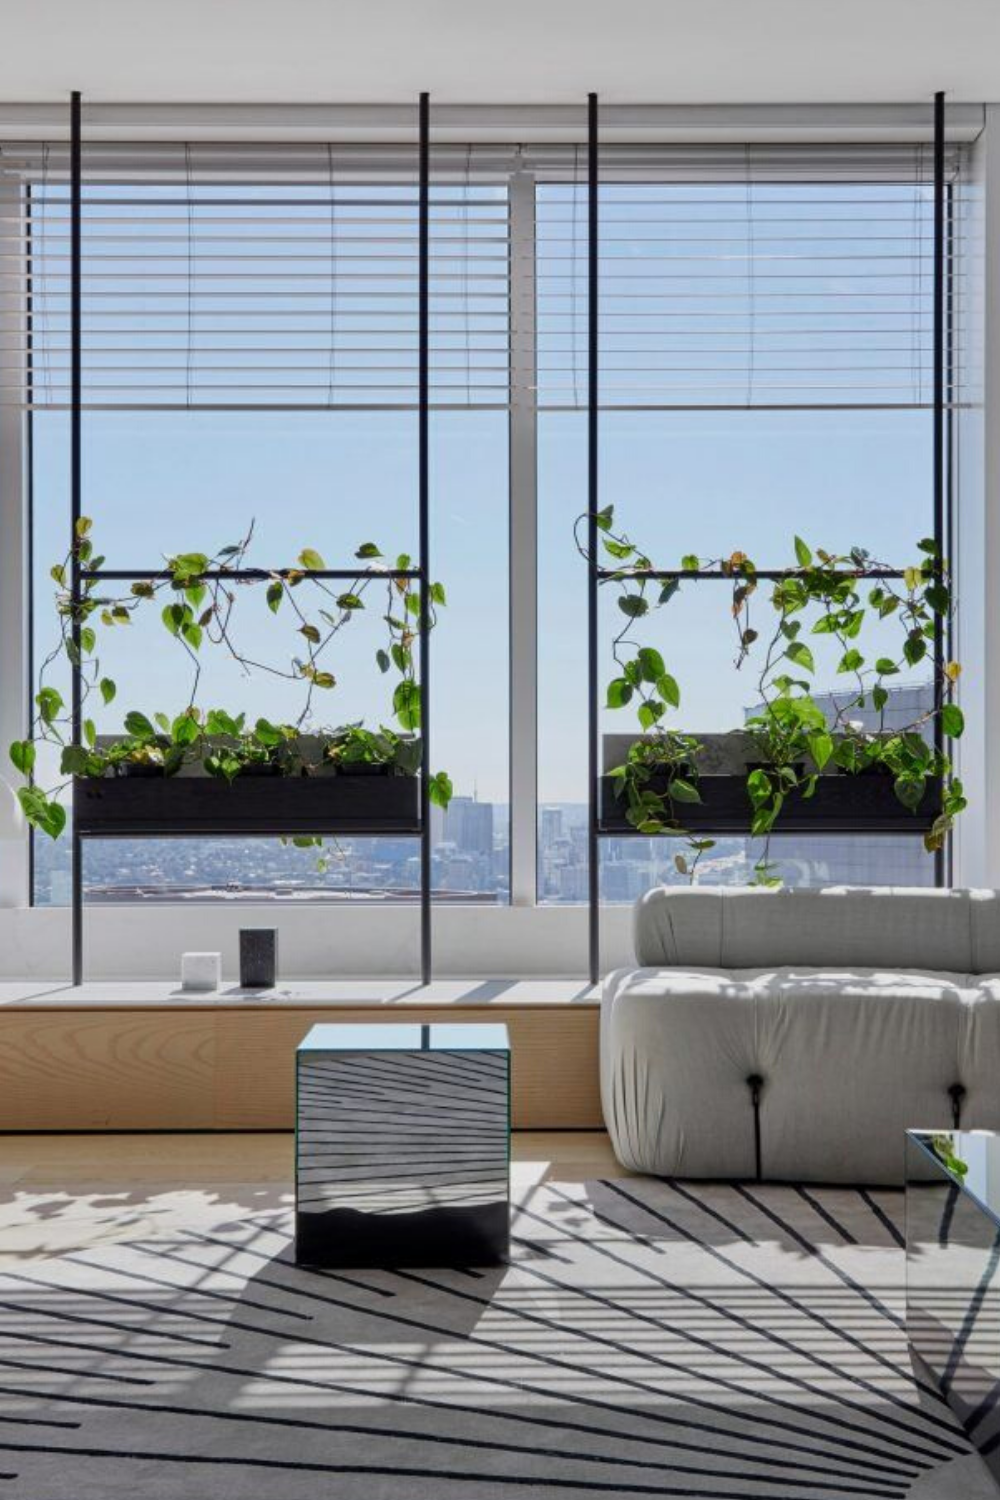 Why don't you create a cozy and pleasurable atmosphere starting from your office décor? It may be the best solution for a more productive day! Let 5 OFFICE TOP TRENDS inspire you in ISPLOSION. Visit us for: #interior #decor #moderndecor #interiordecor #moderninteriordesign #contemporaryinteriors #besthomestyle #interiordesign #luxury #interiors #interiordesign #homedecor #office